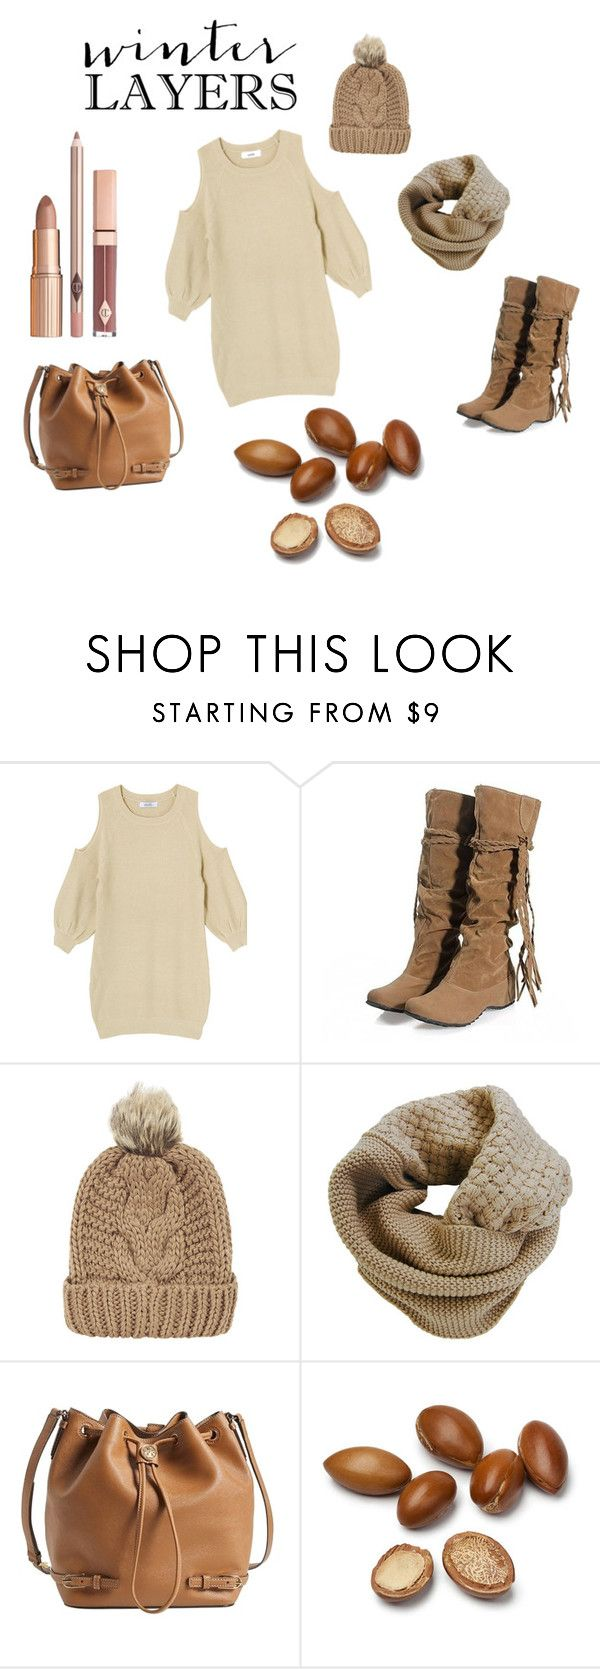 """Untitled #91"" by nashrinsabila on Polyvore featuring Chicnova Fashion, Humble Chic, Tory Burch, women's clothing, women, female, woman, misses and juniors"